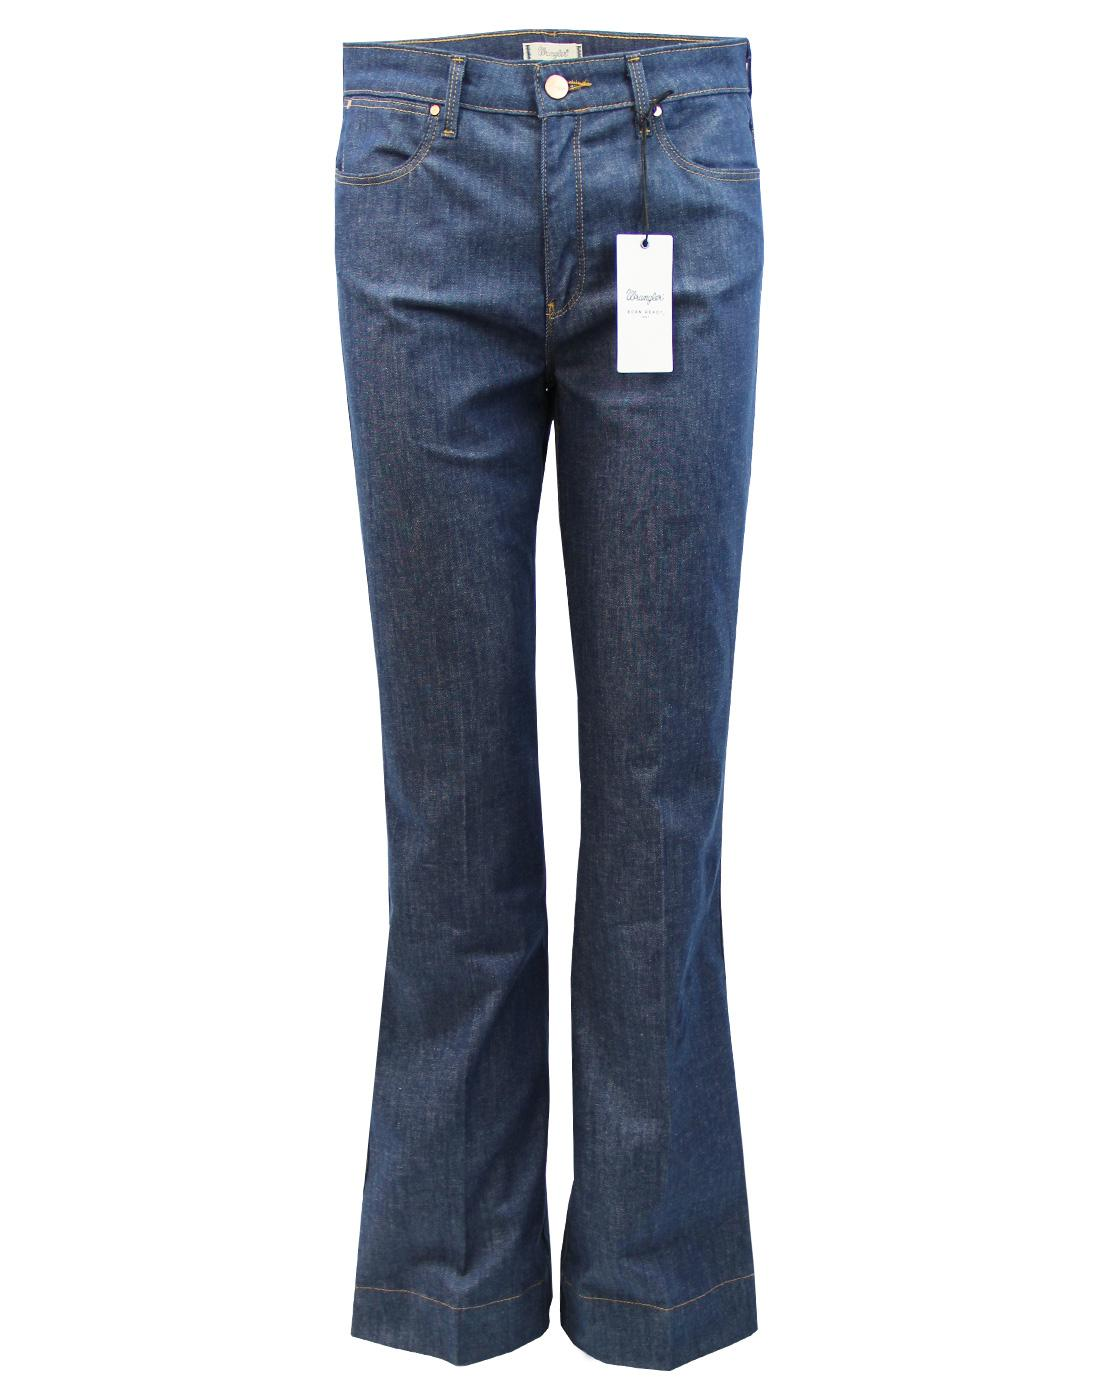 WRANGLER Retro 70s Indie Stretch Denim Flares (LB)